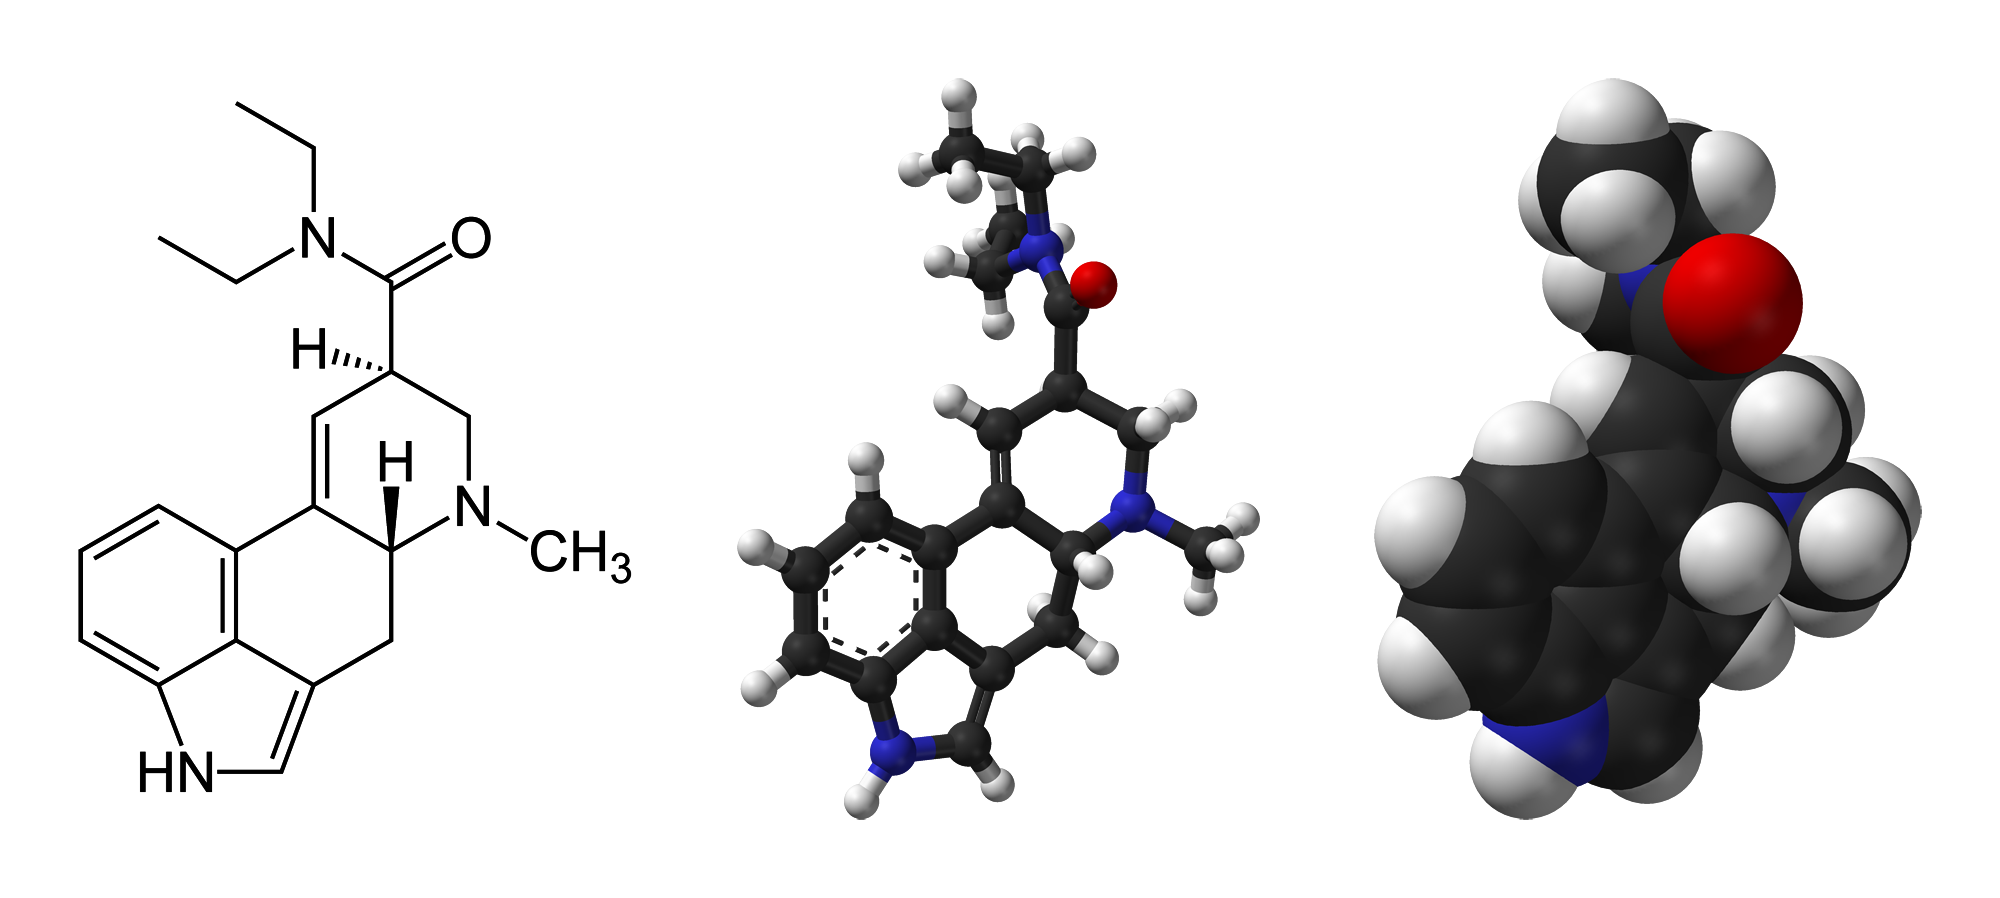 [Image: LSD-2D-skeletal-formula-and-3D-models.png]